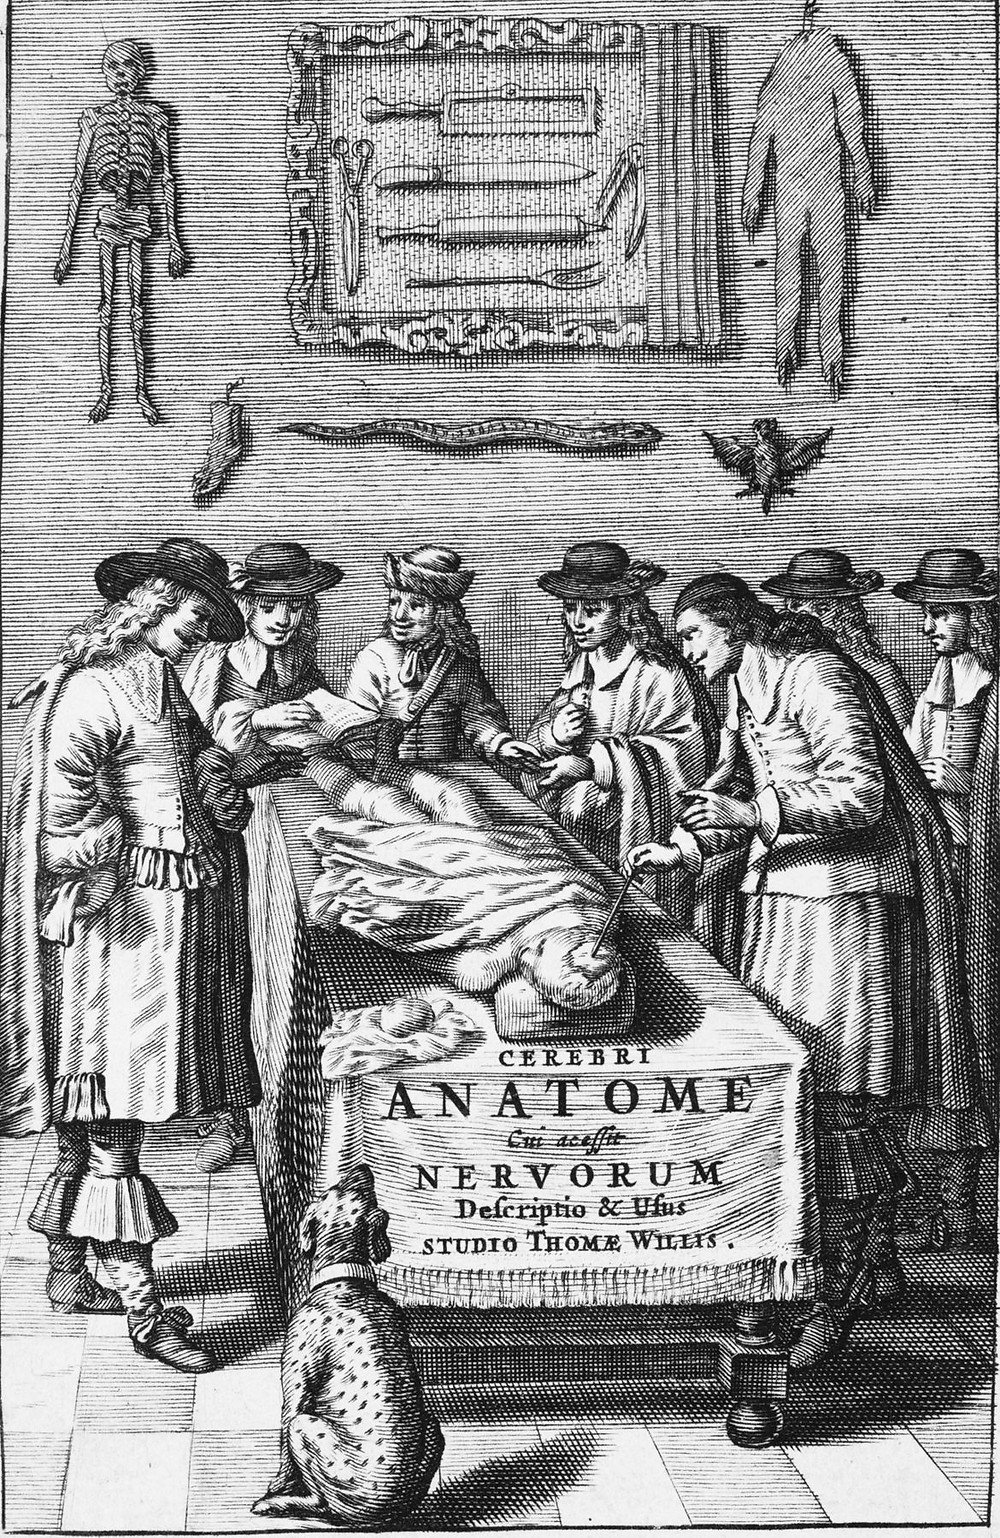 An image from a founding document of both neurology and pathological anatomy by Thomas Willis portraying a number of medical men surrounding a dead body on a table.